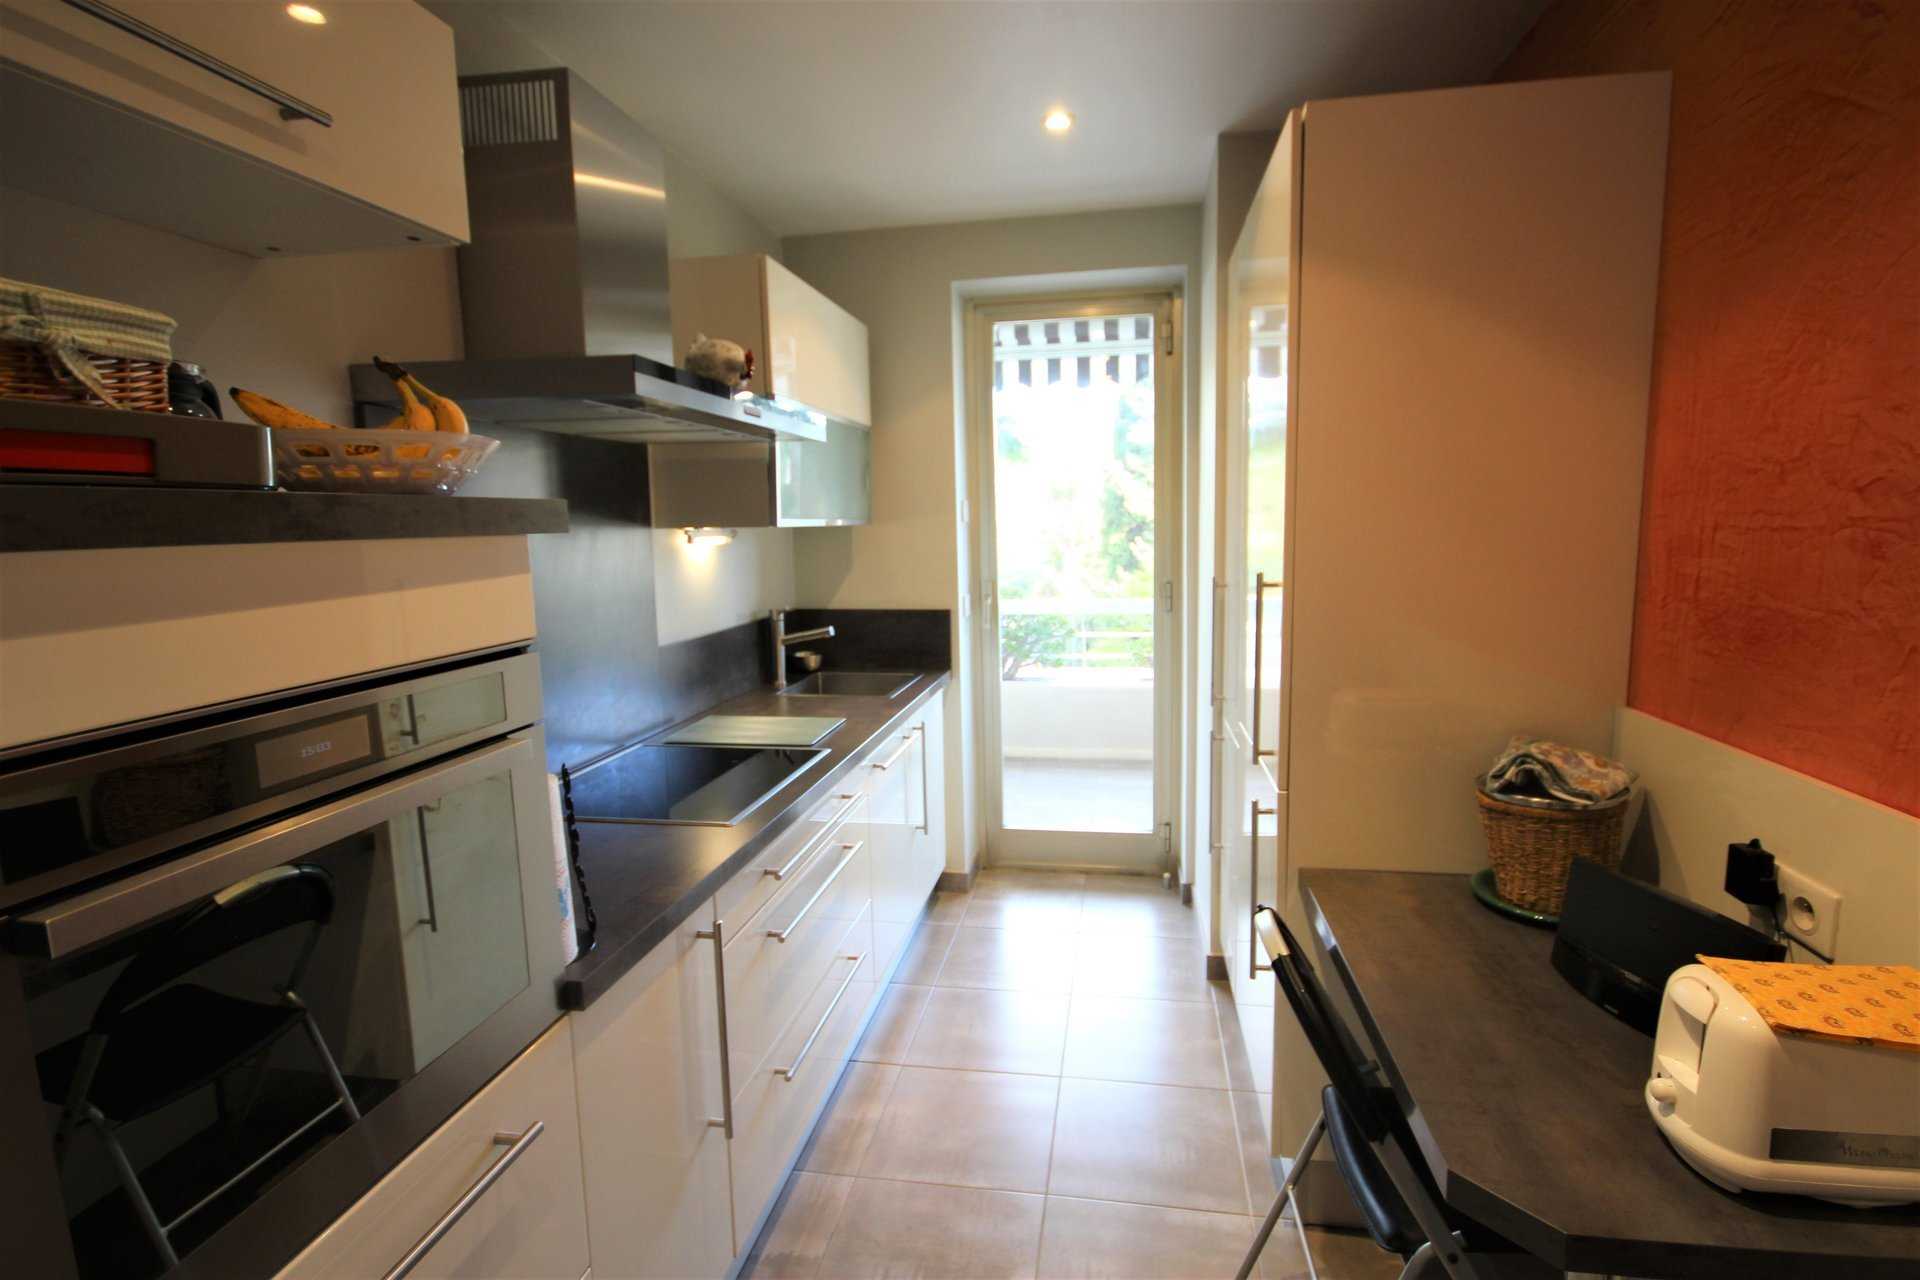 SALE 2 ROOMS RENOVATED NEAR SHOPS